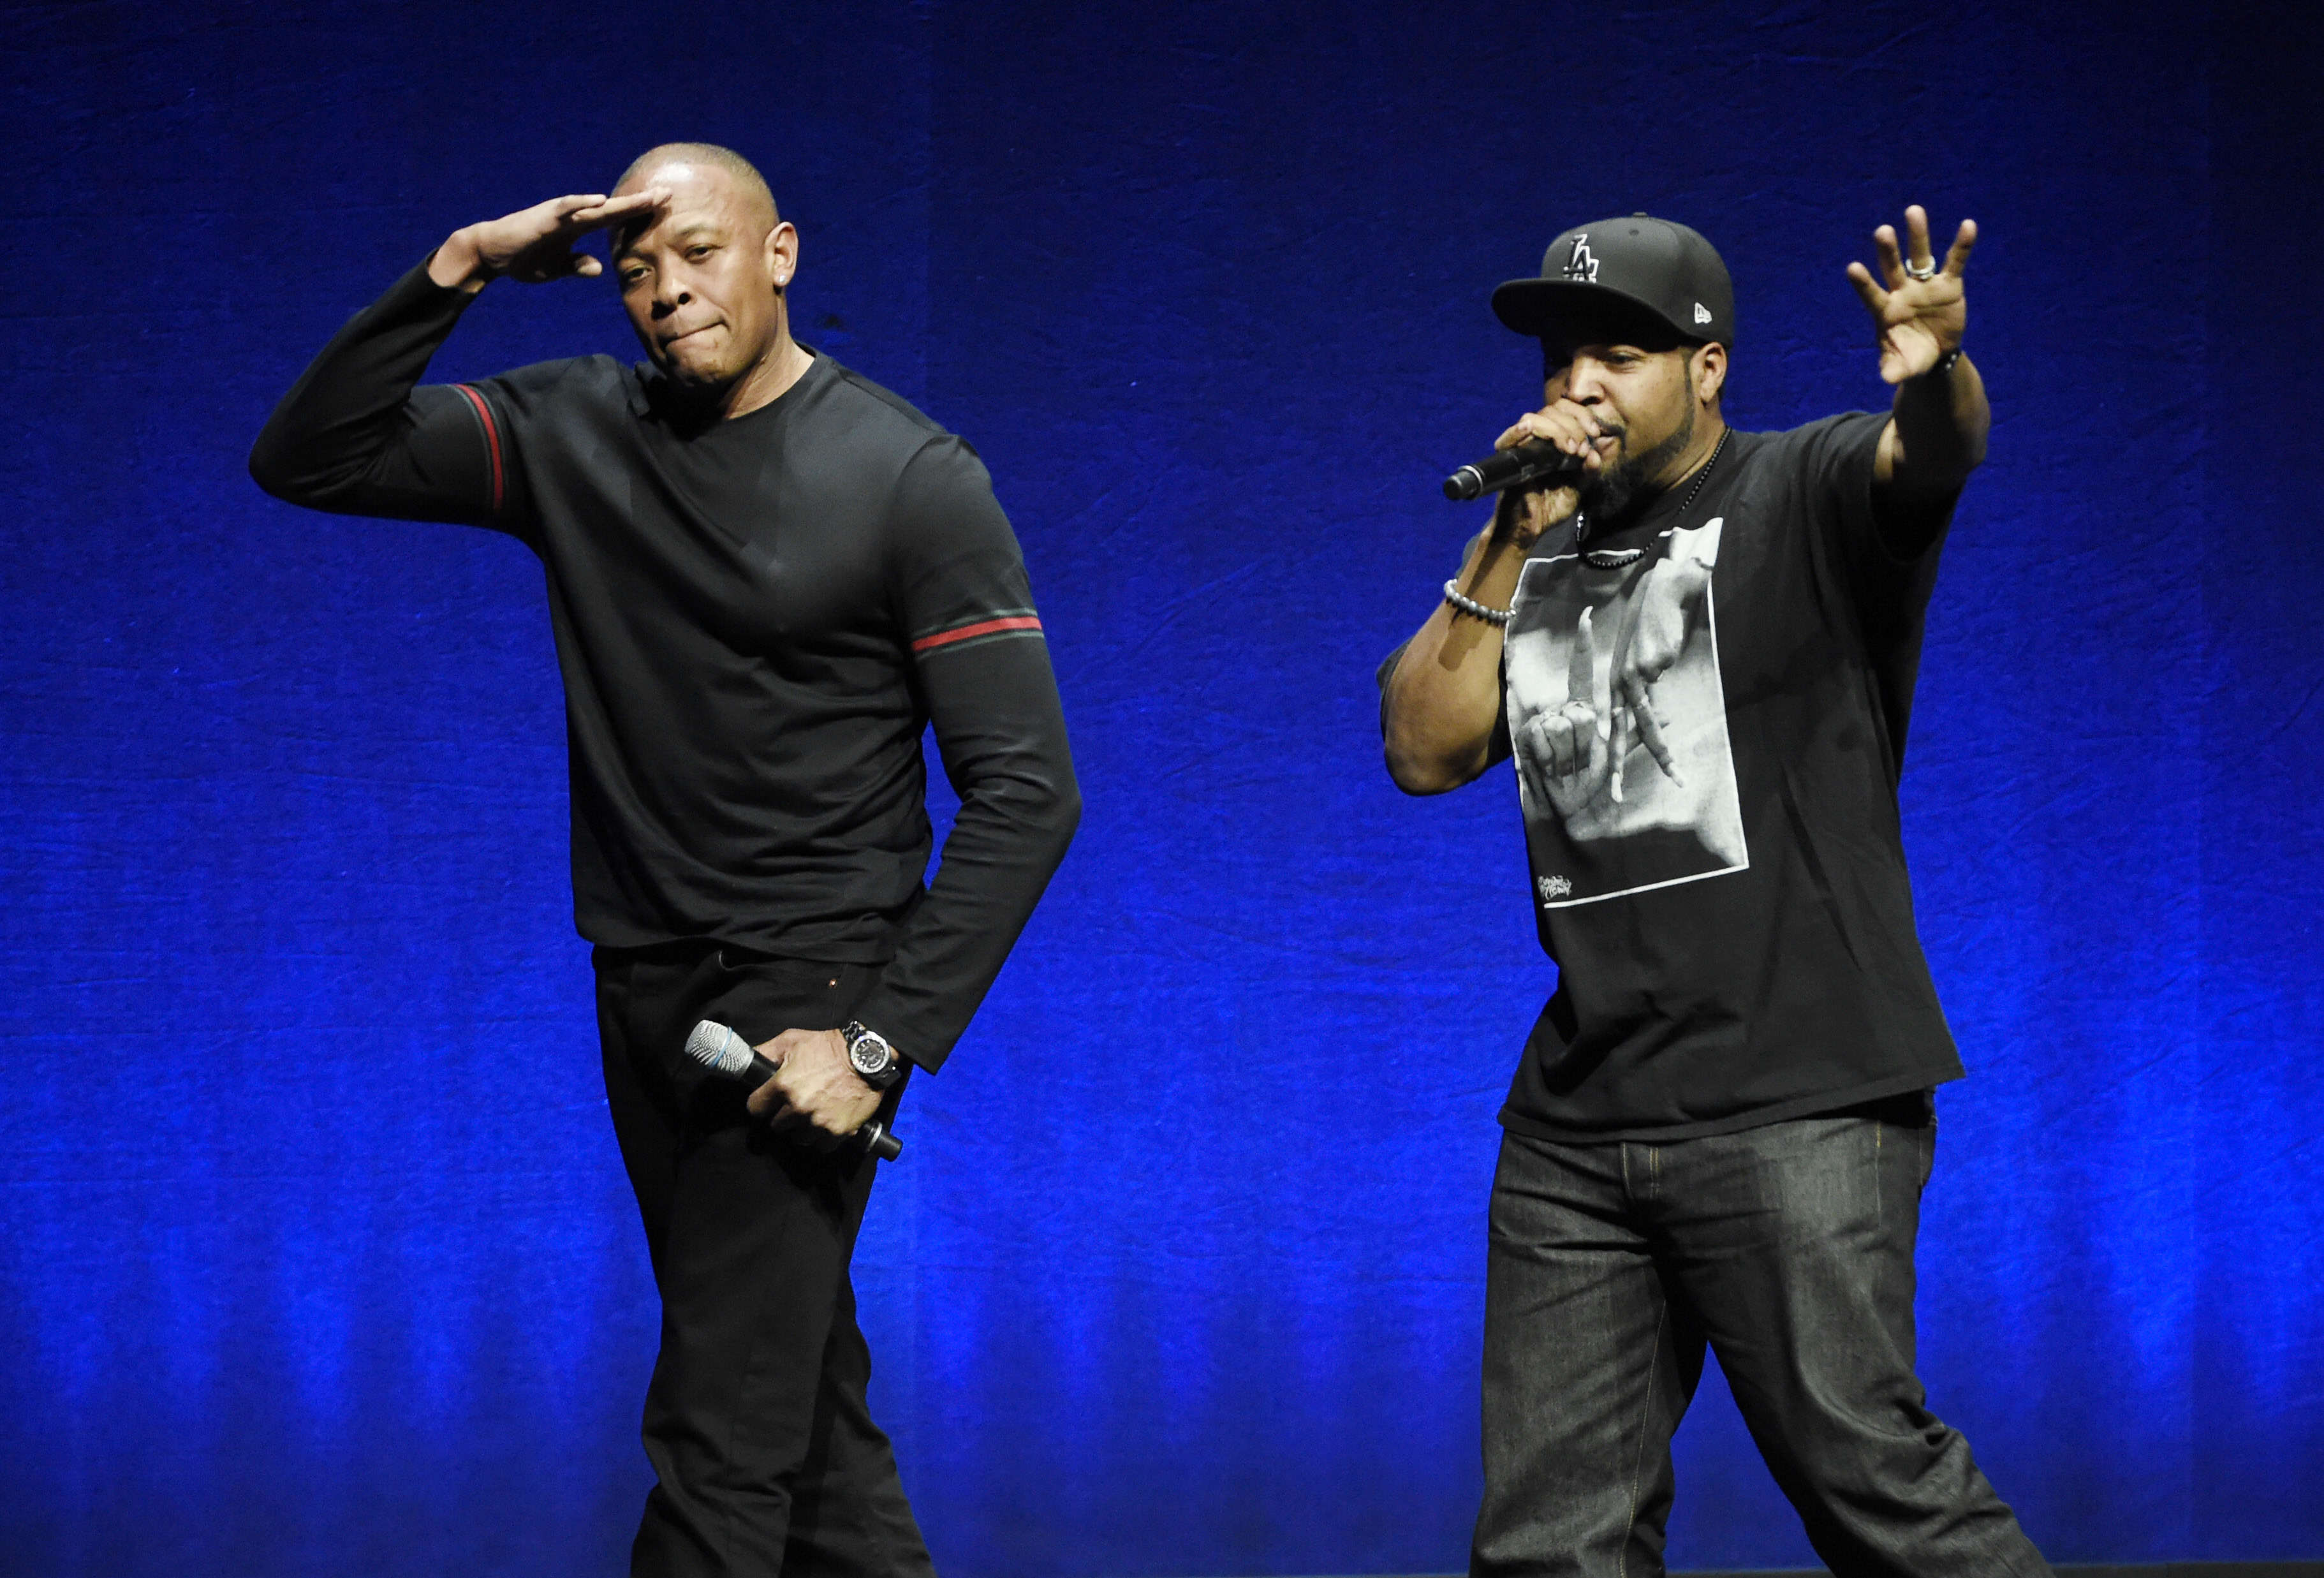 It Looks Like Apple Is Making Its Own TV Series Starring Dr Dre dre3